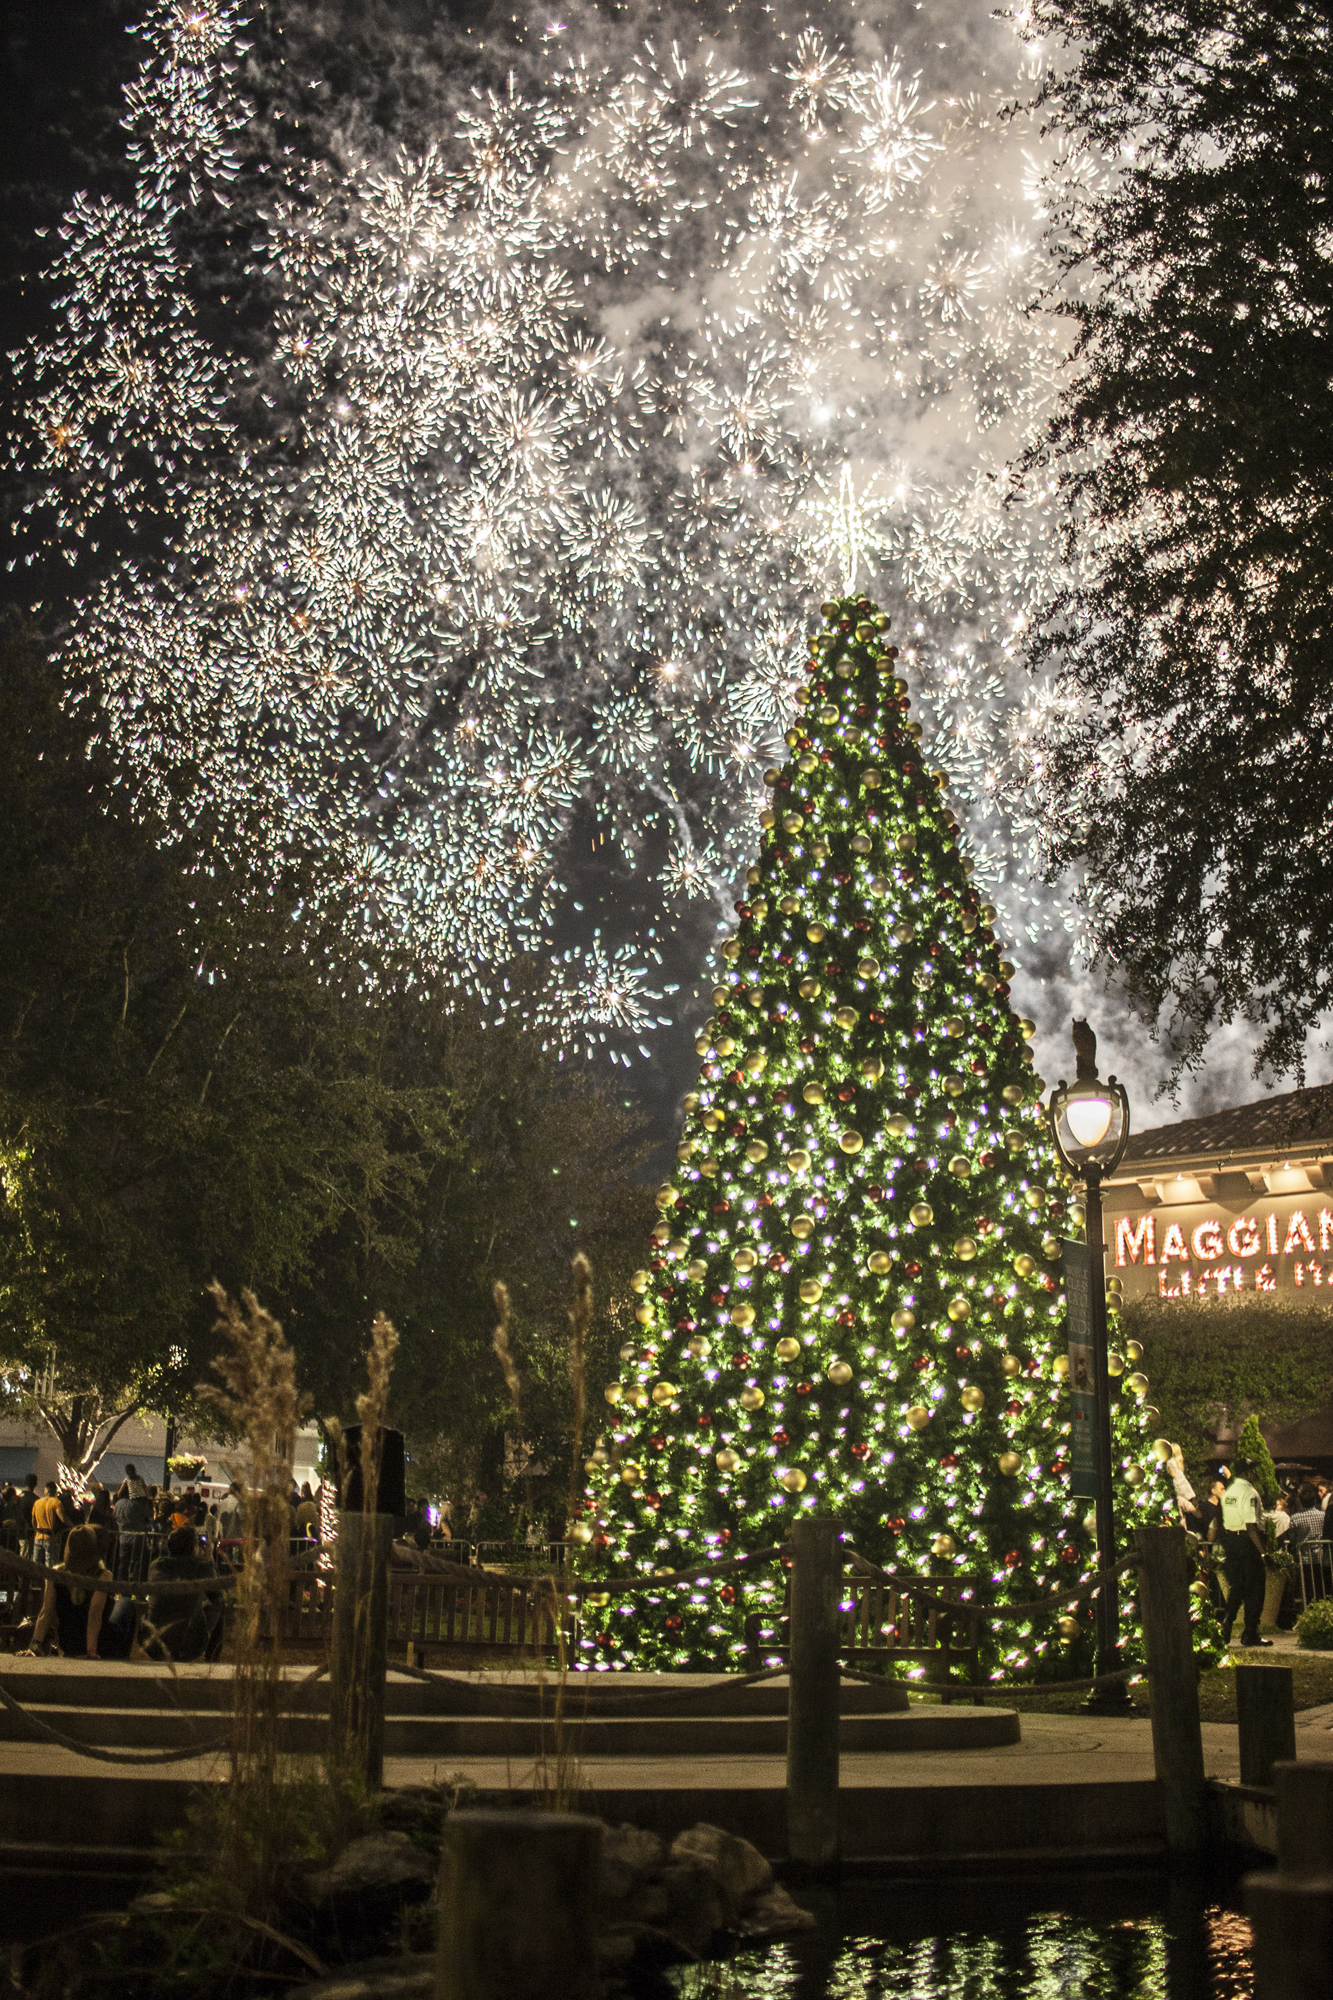 Bring the whole family out to the St. Johns Town Center today for some holiday fun! - Events start Saturday at 2 pm. (Saturday, November 11, 2017)